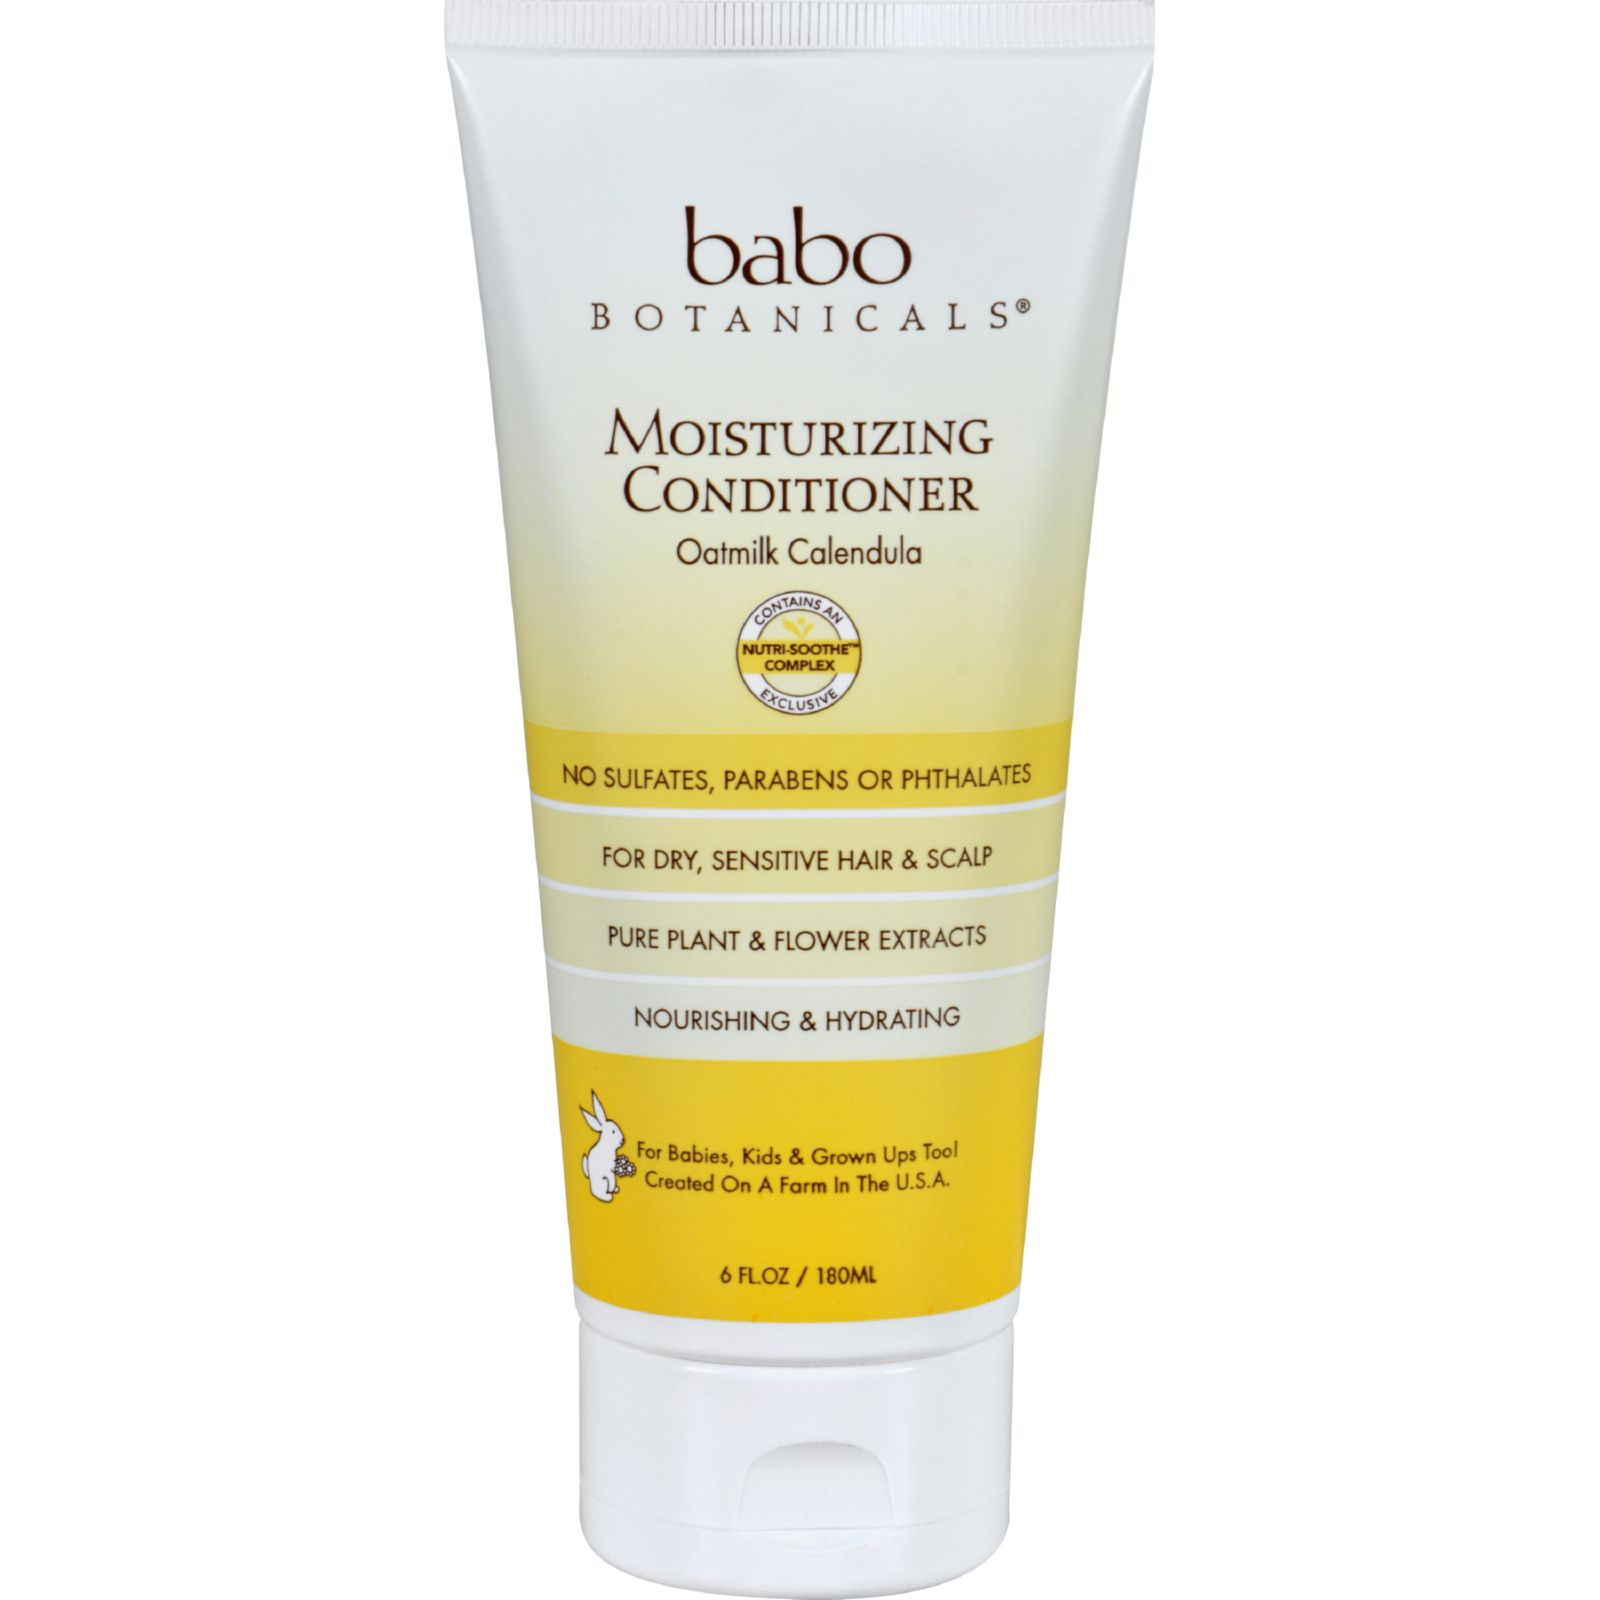 Babo Botanicals Conditioner  Moisturizing  Oatmilk  6 oz